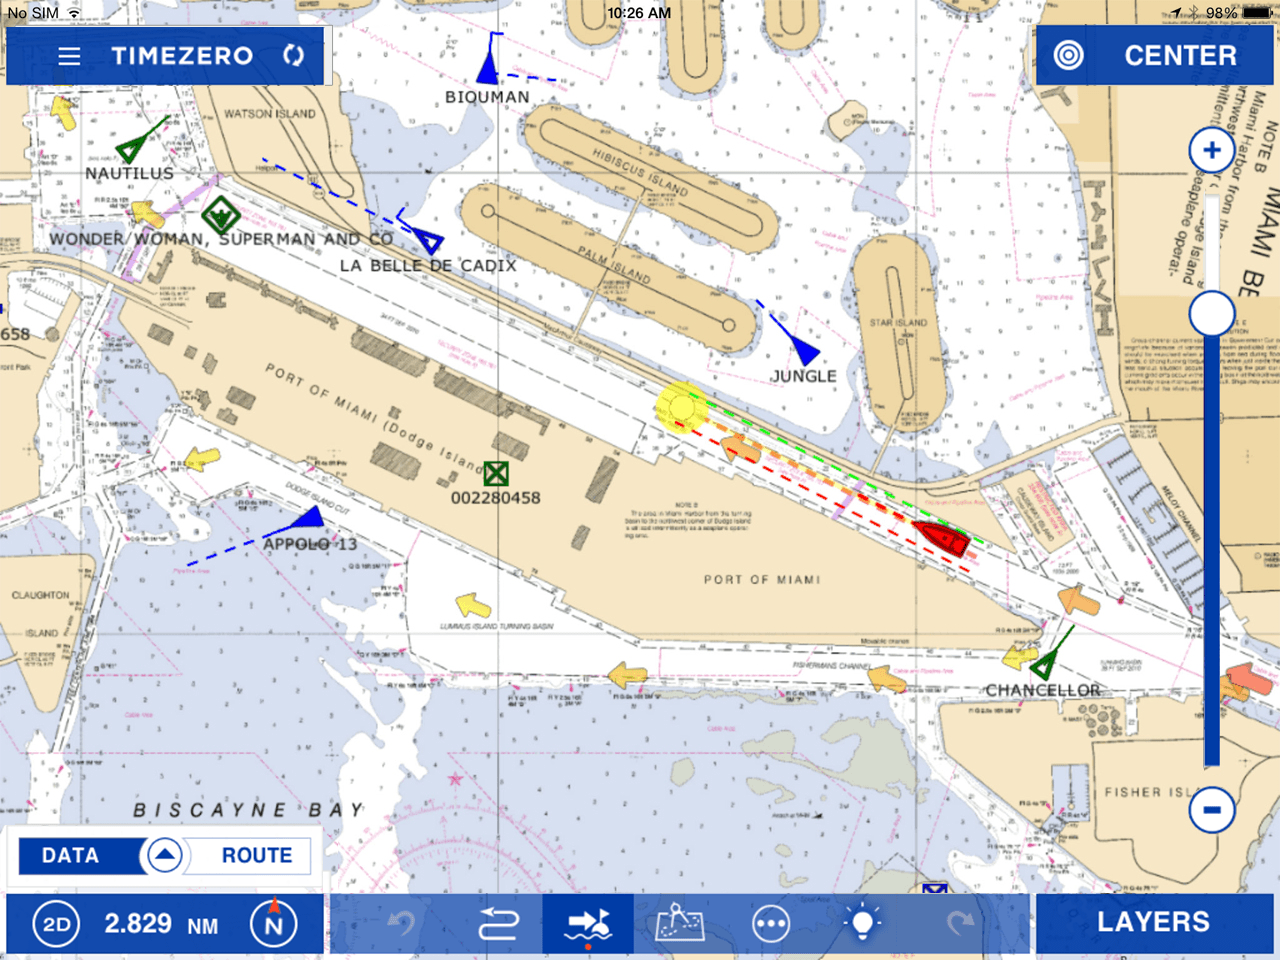 Tz Iboat Timezero Ipad App B Boat Running Lights Wiring Diagram Free Picture Ais Module This Allows You To Monitor Maritime Traffic In Your Navigation Area It Will Increase Safety By Displaying All Targets On